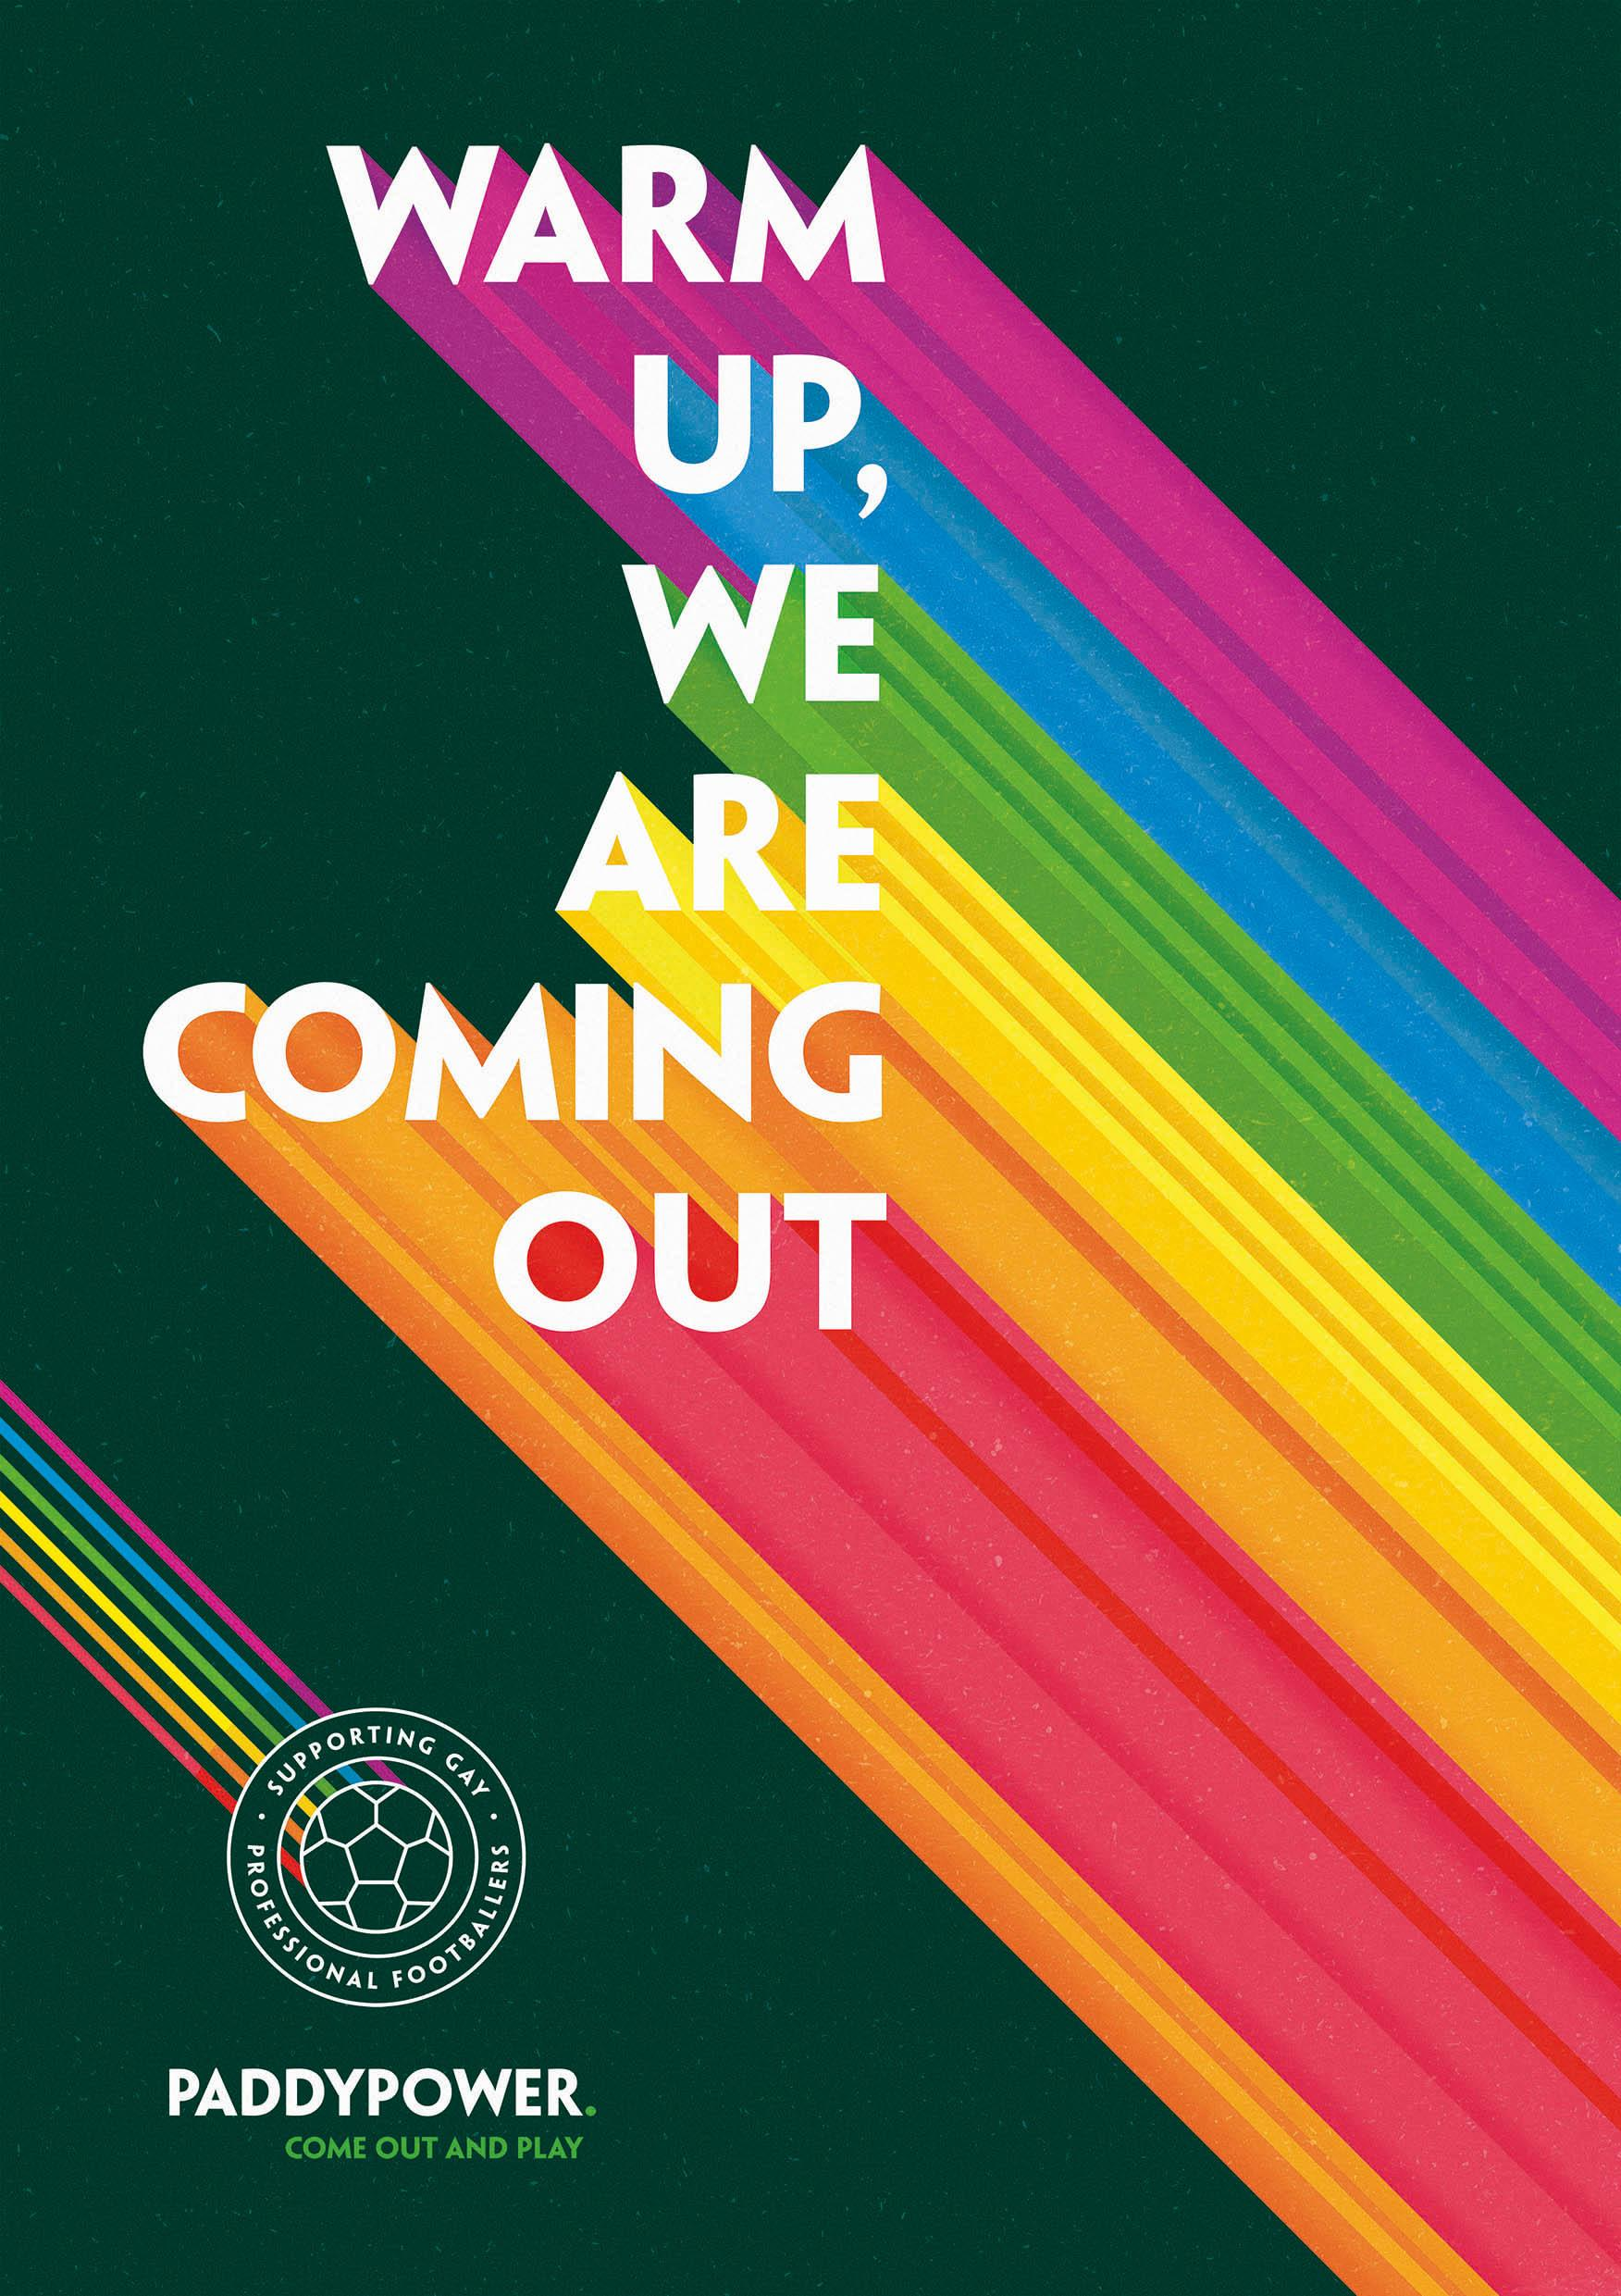 Paddy Power Print Ad - Warm Up, We Are Coming Out